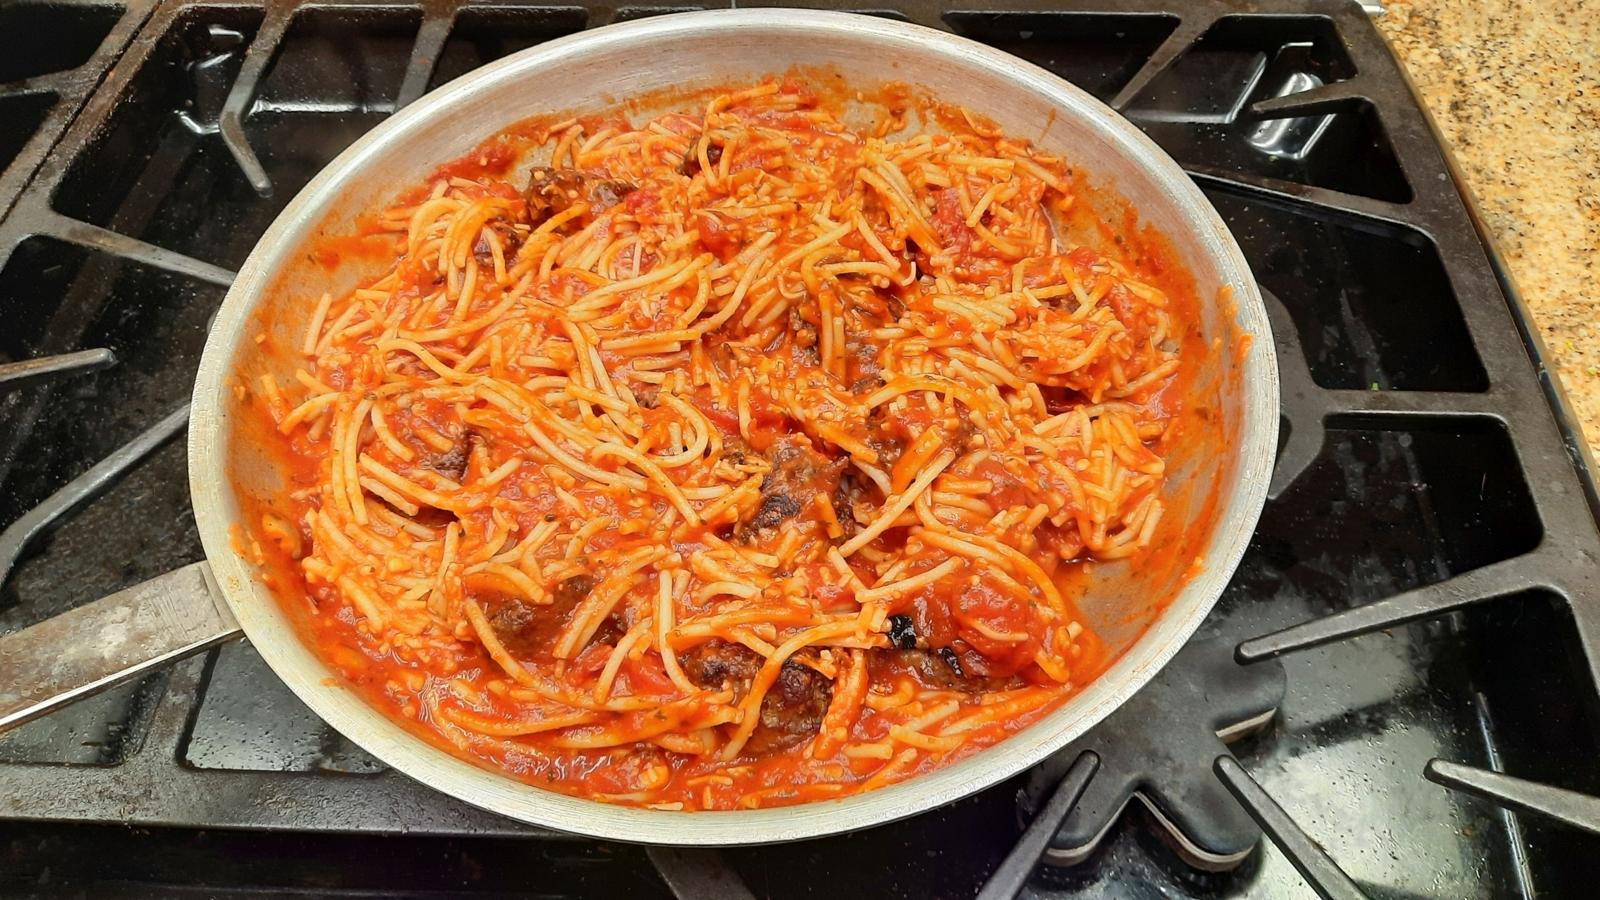 Sauce Pan with Spaghetti and Meatballs